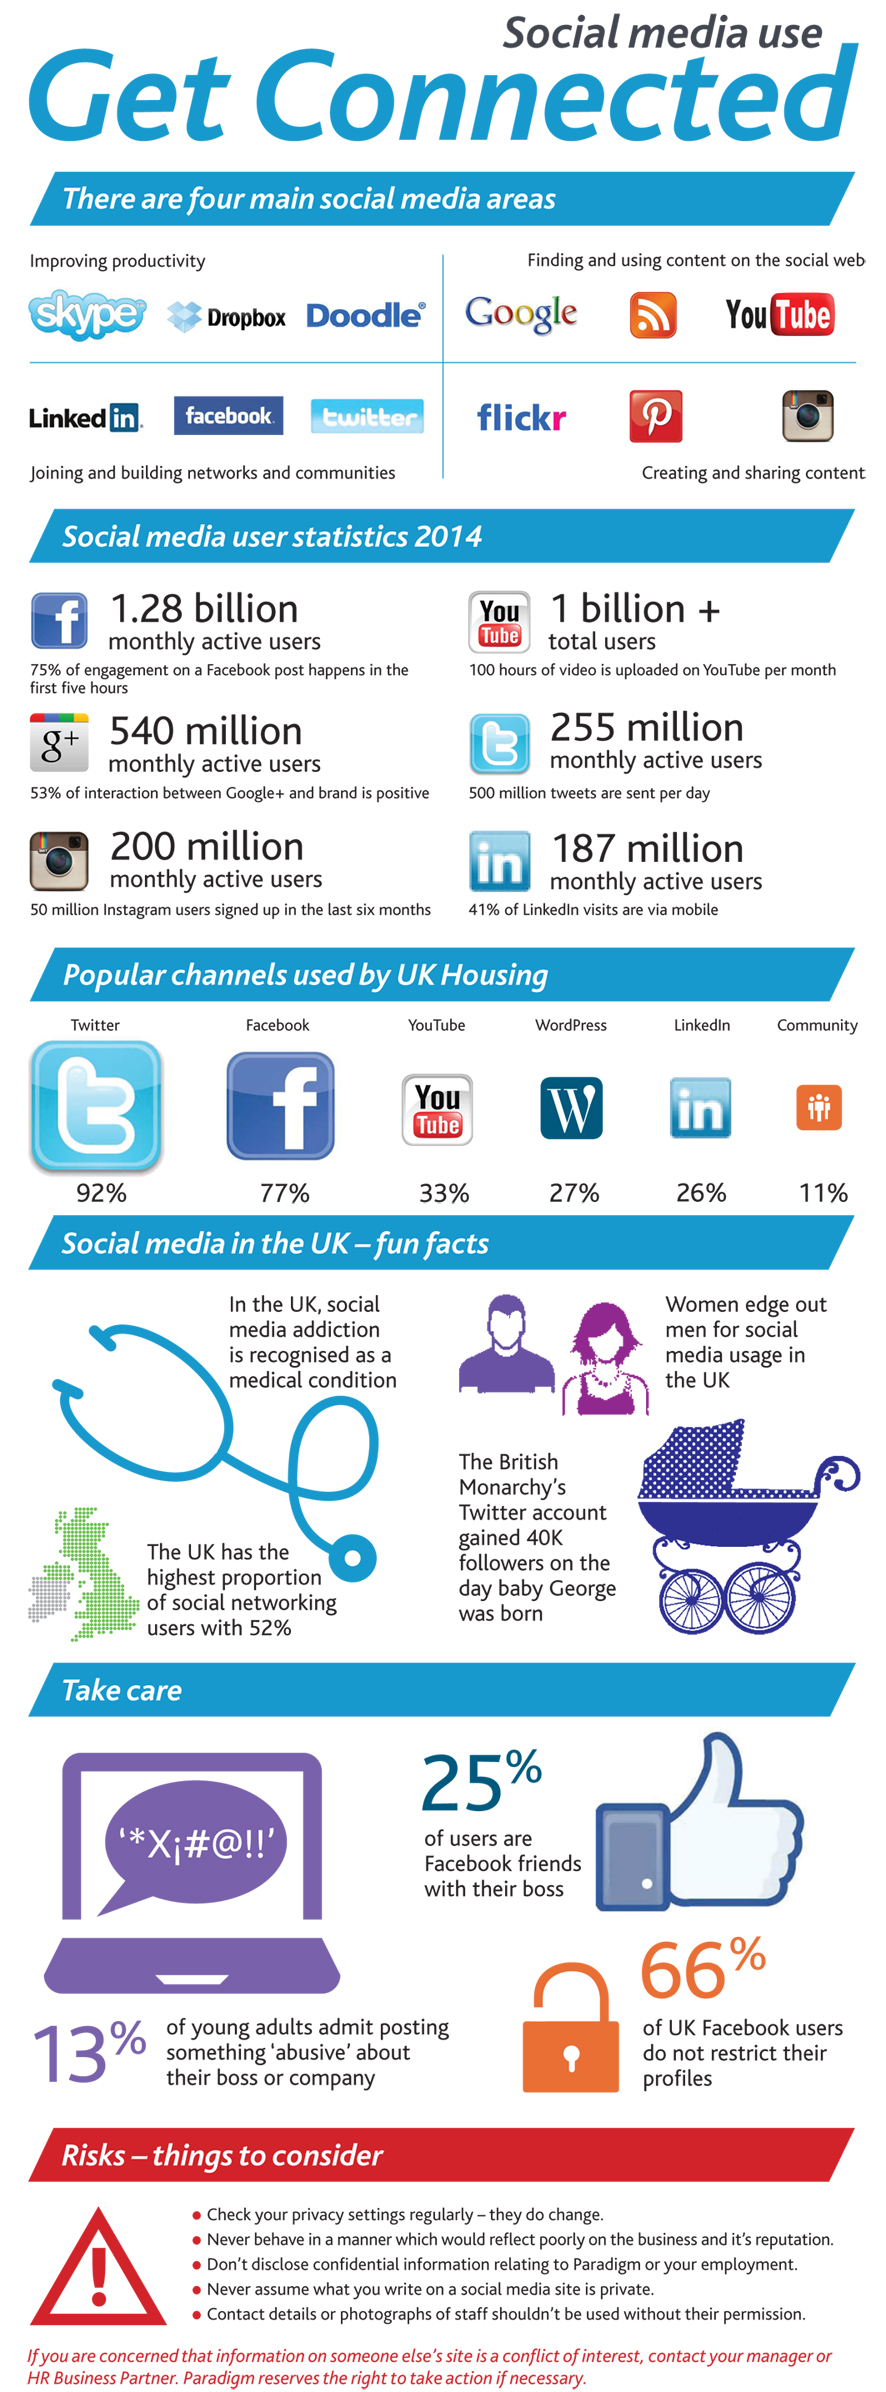 Get connected social media use infographic